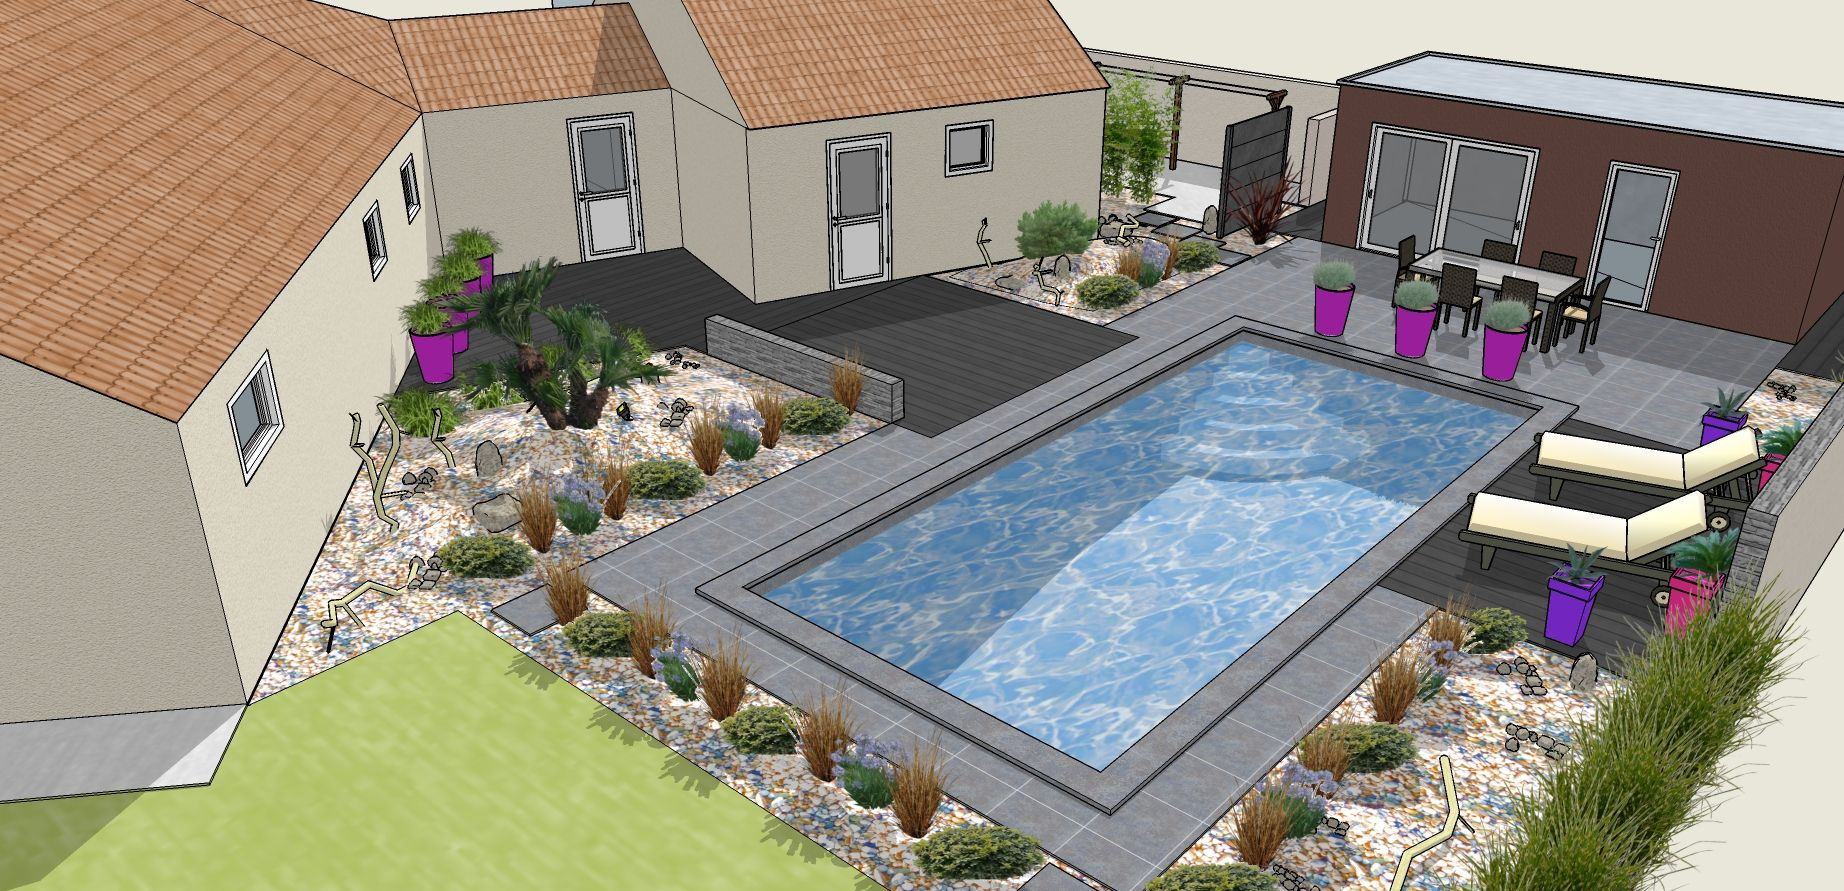 Am nagement paysager piscine creus e contemporain for Massif paysager contemporain